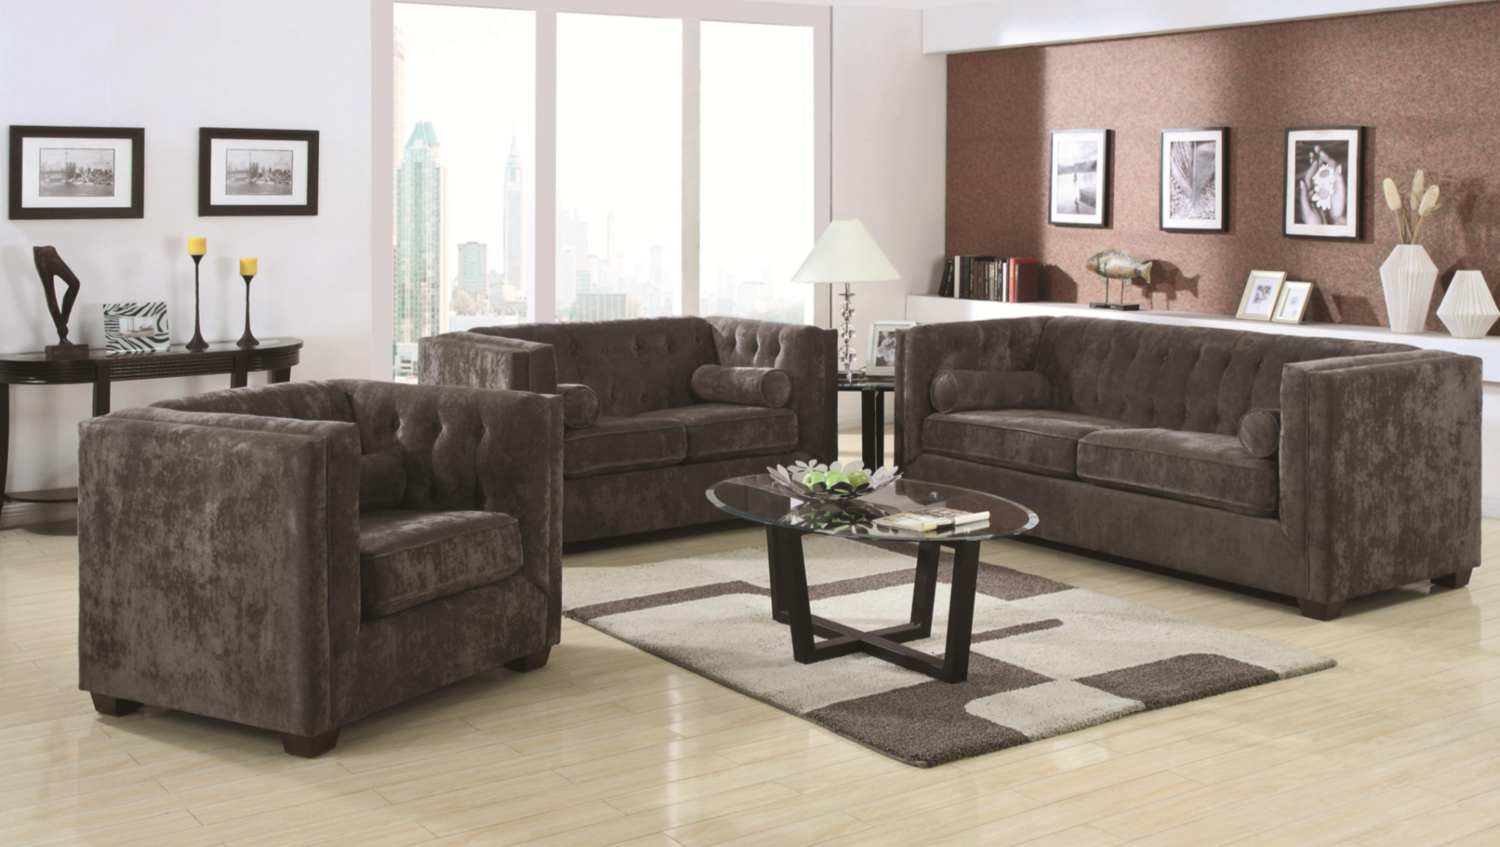 Furniture stores in miami florida - Courtly Charcoal Sofa